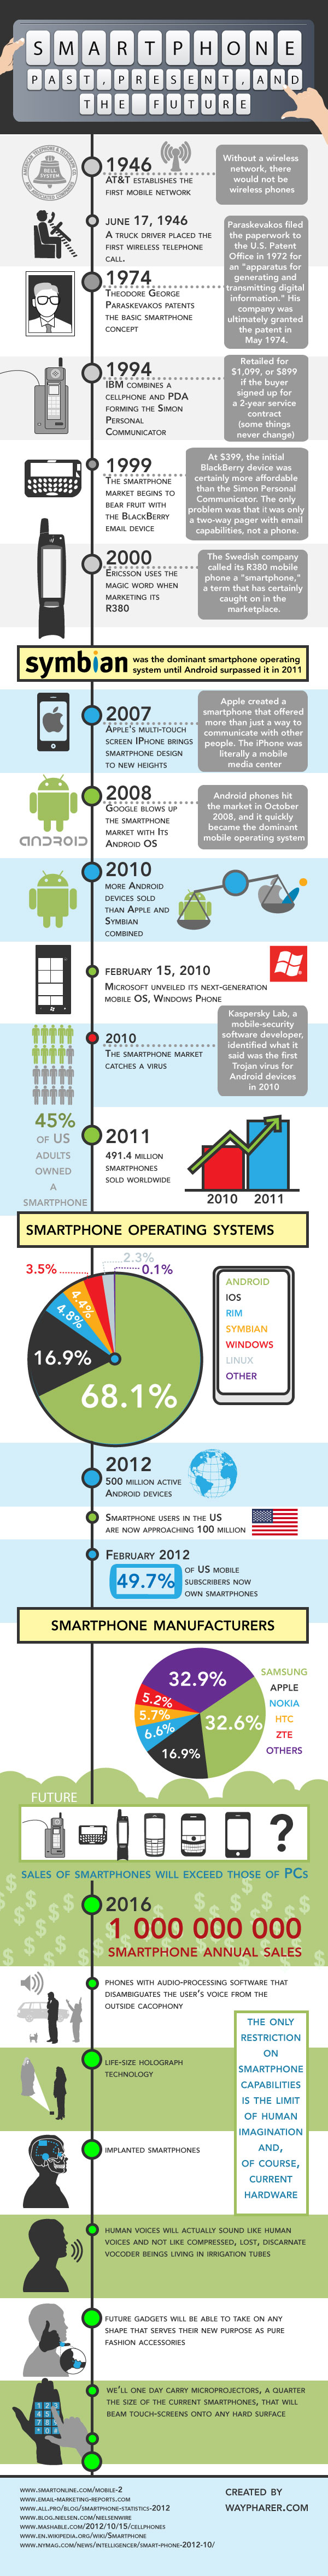 smartphones-past-future-infographic-lowres